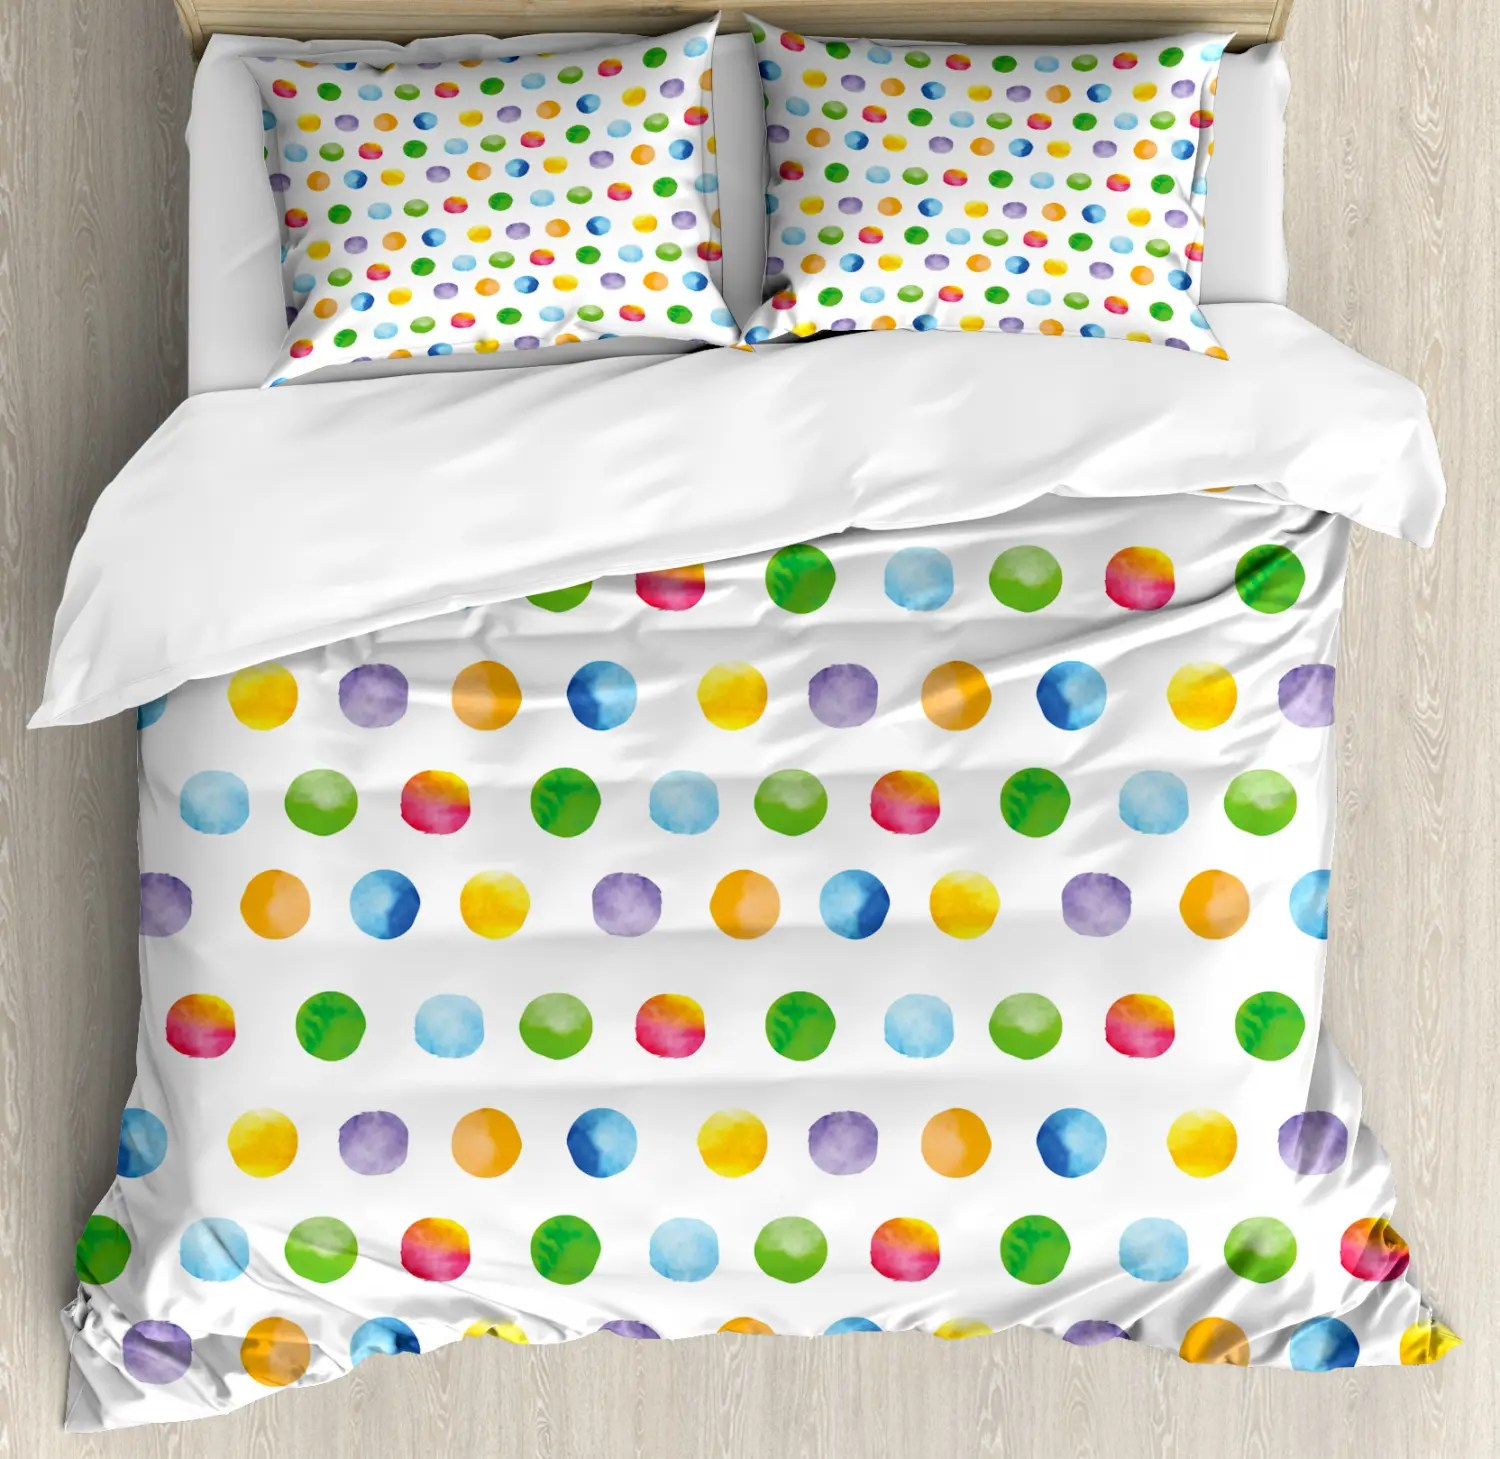 Detektiv Conan Bettwäsche Abstract Duvet Cover Set Pillow Shams Colord Big Dots Print Polka